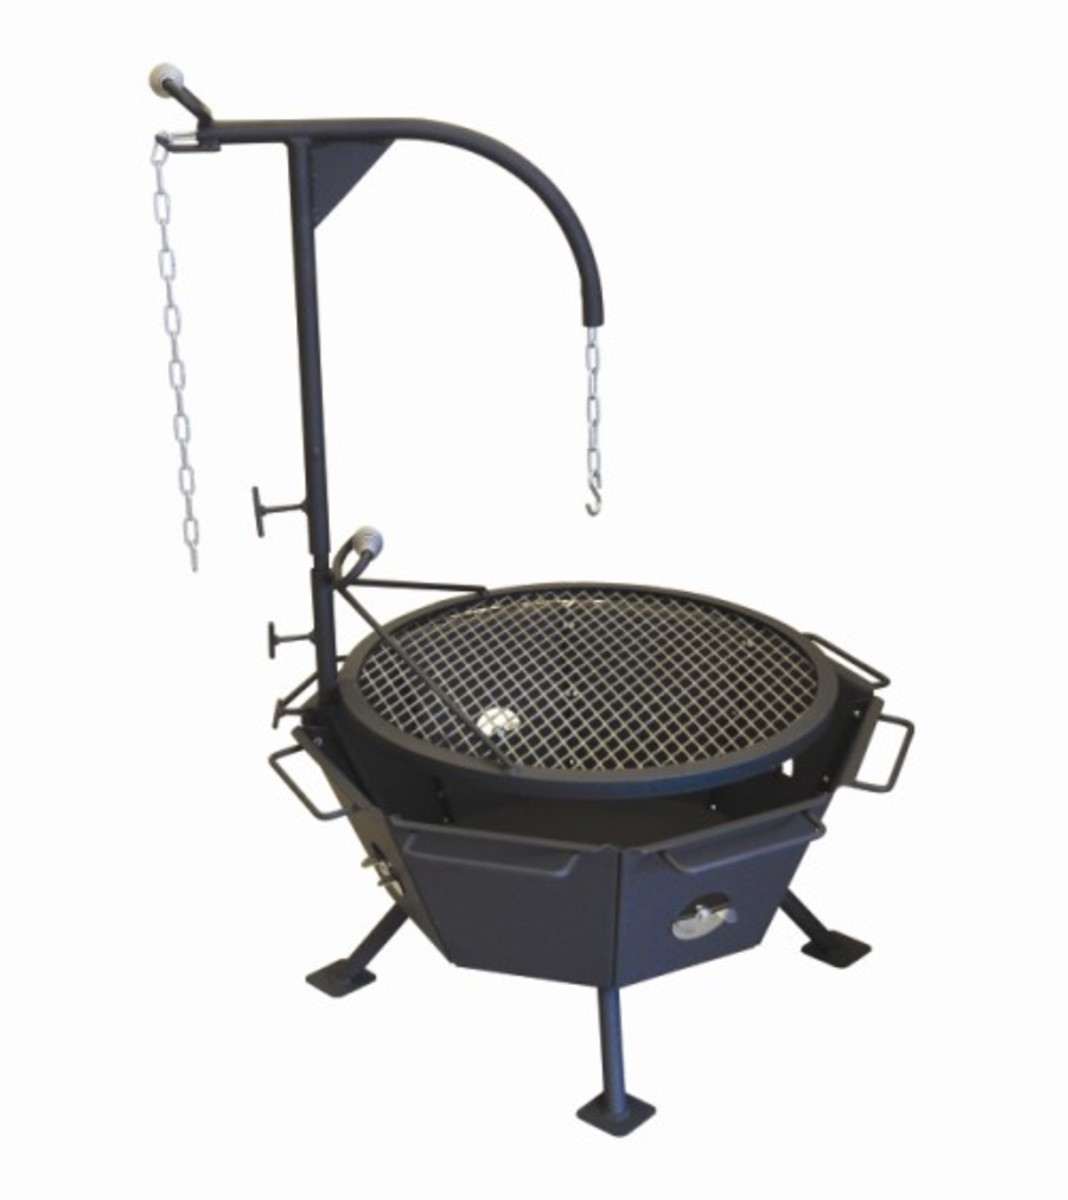 Self contained out door fire pit with adjustable boom and grill from Cottage Craft Works.